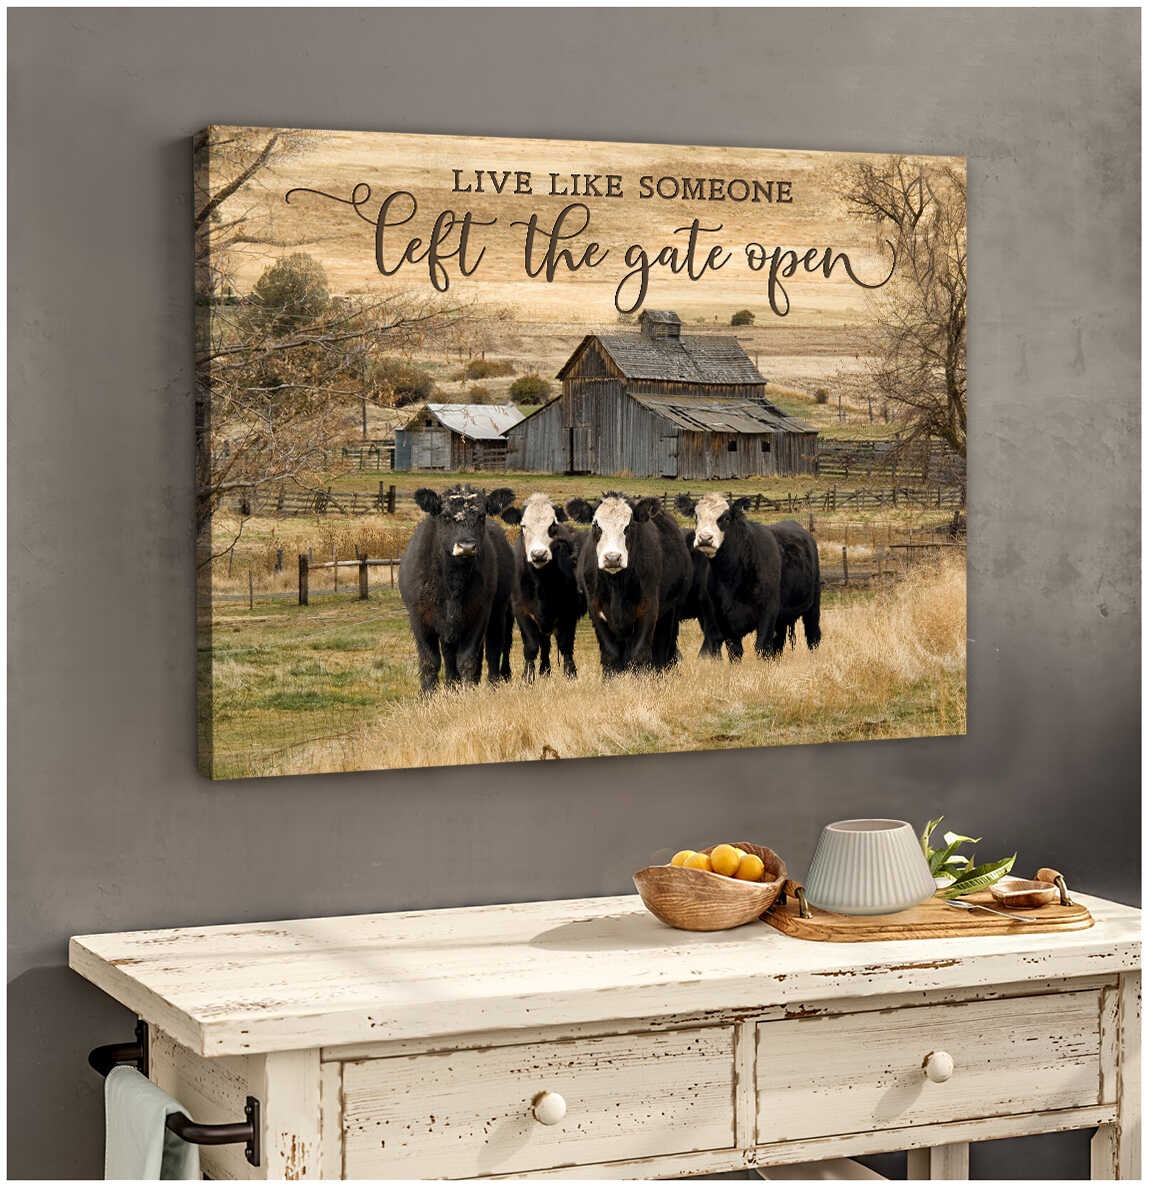 Live like someone left the gate open cow wall art3